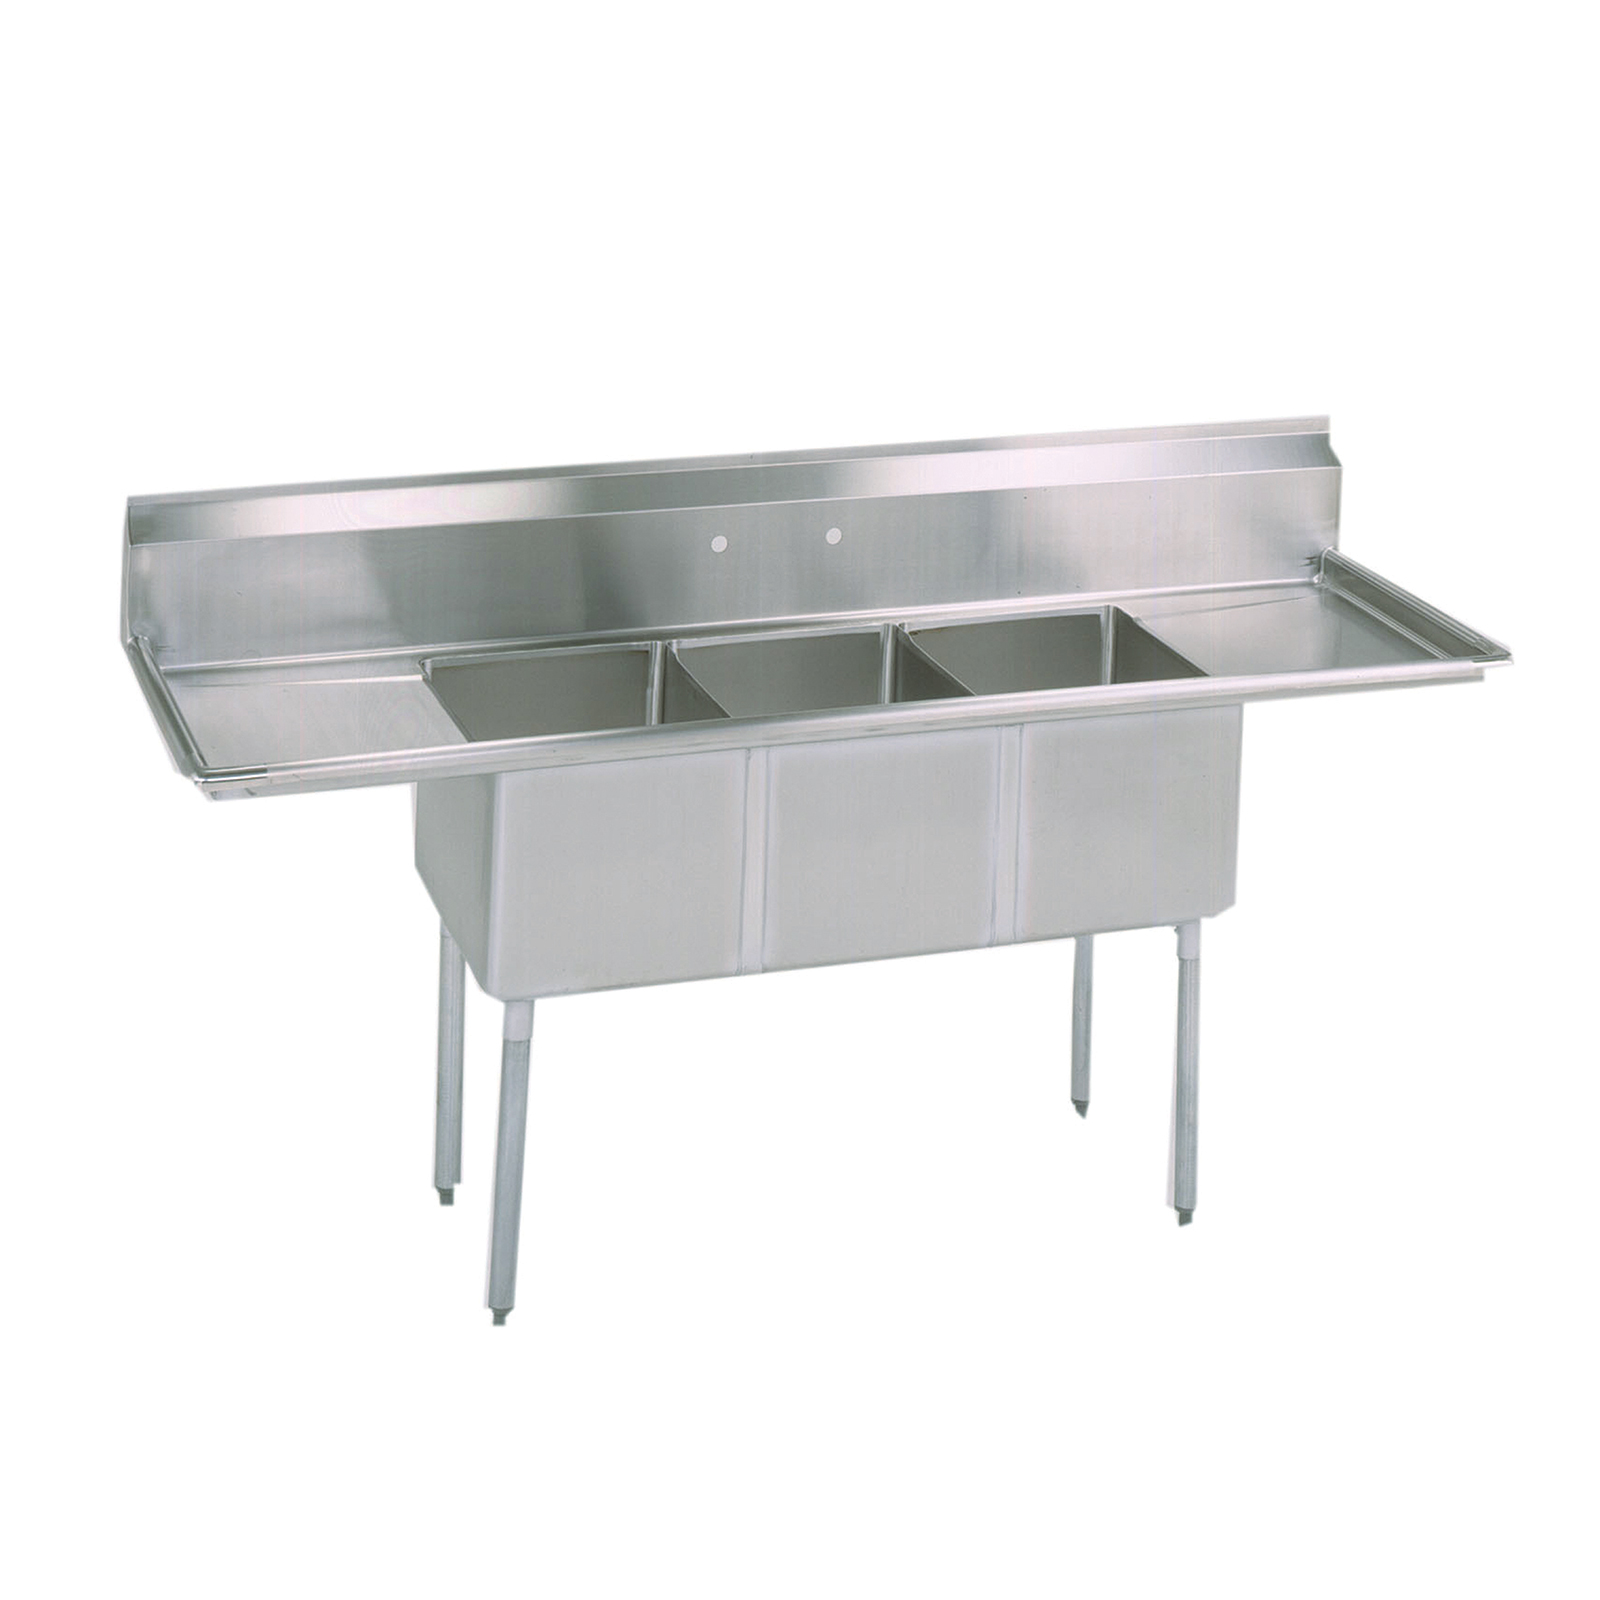 BK Resources BKS-3-2030-14-24T sink, (3) three compartment